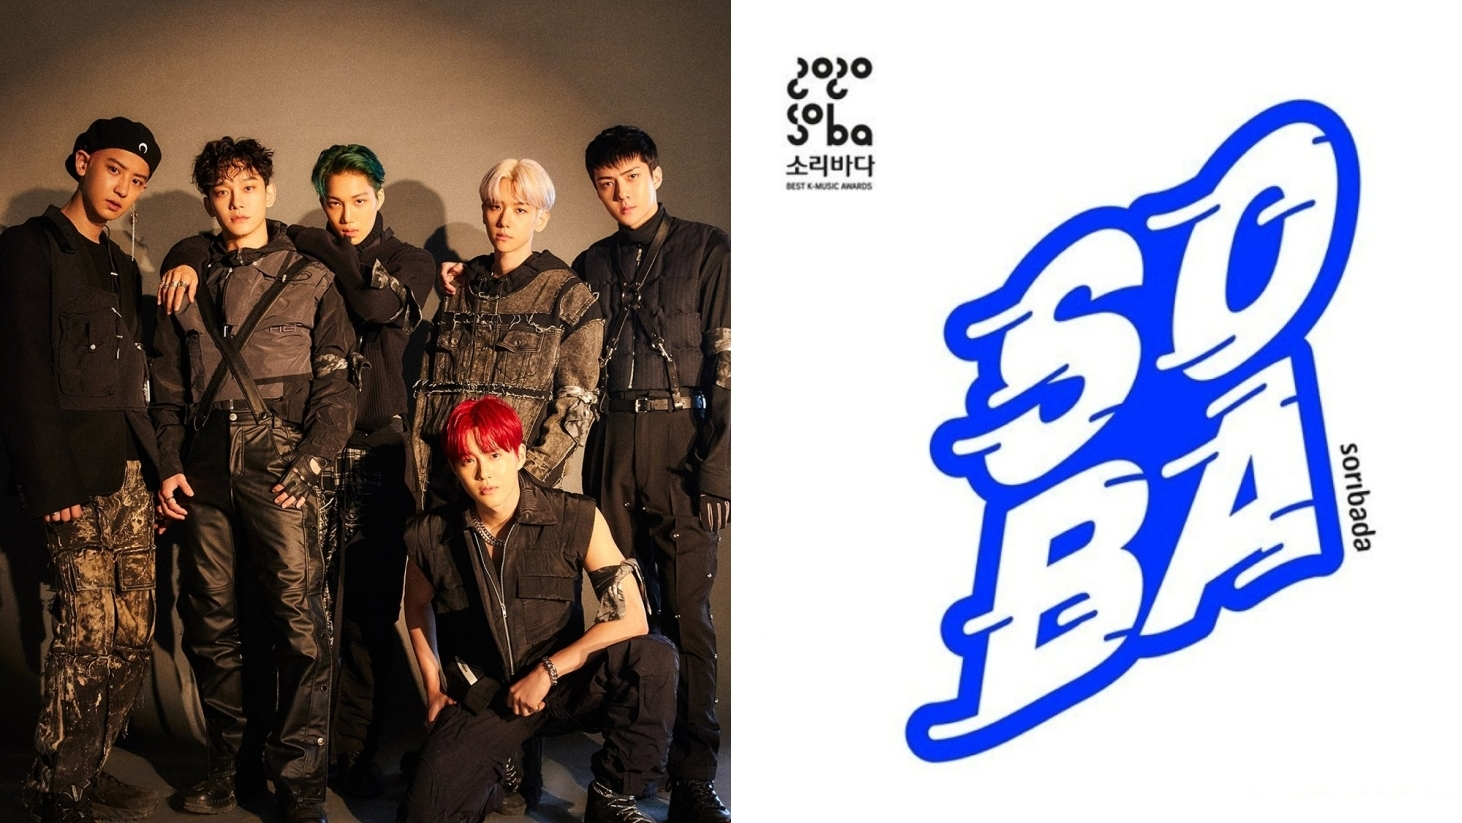 Soribada Apologizes for Not Including EXO in The Award Nomination